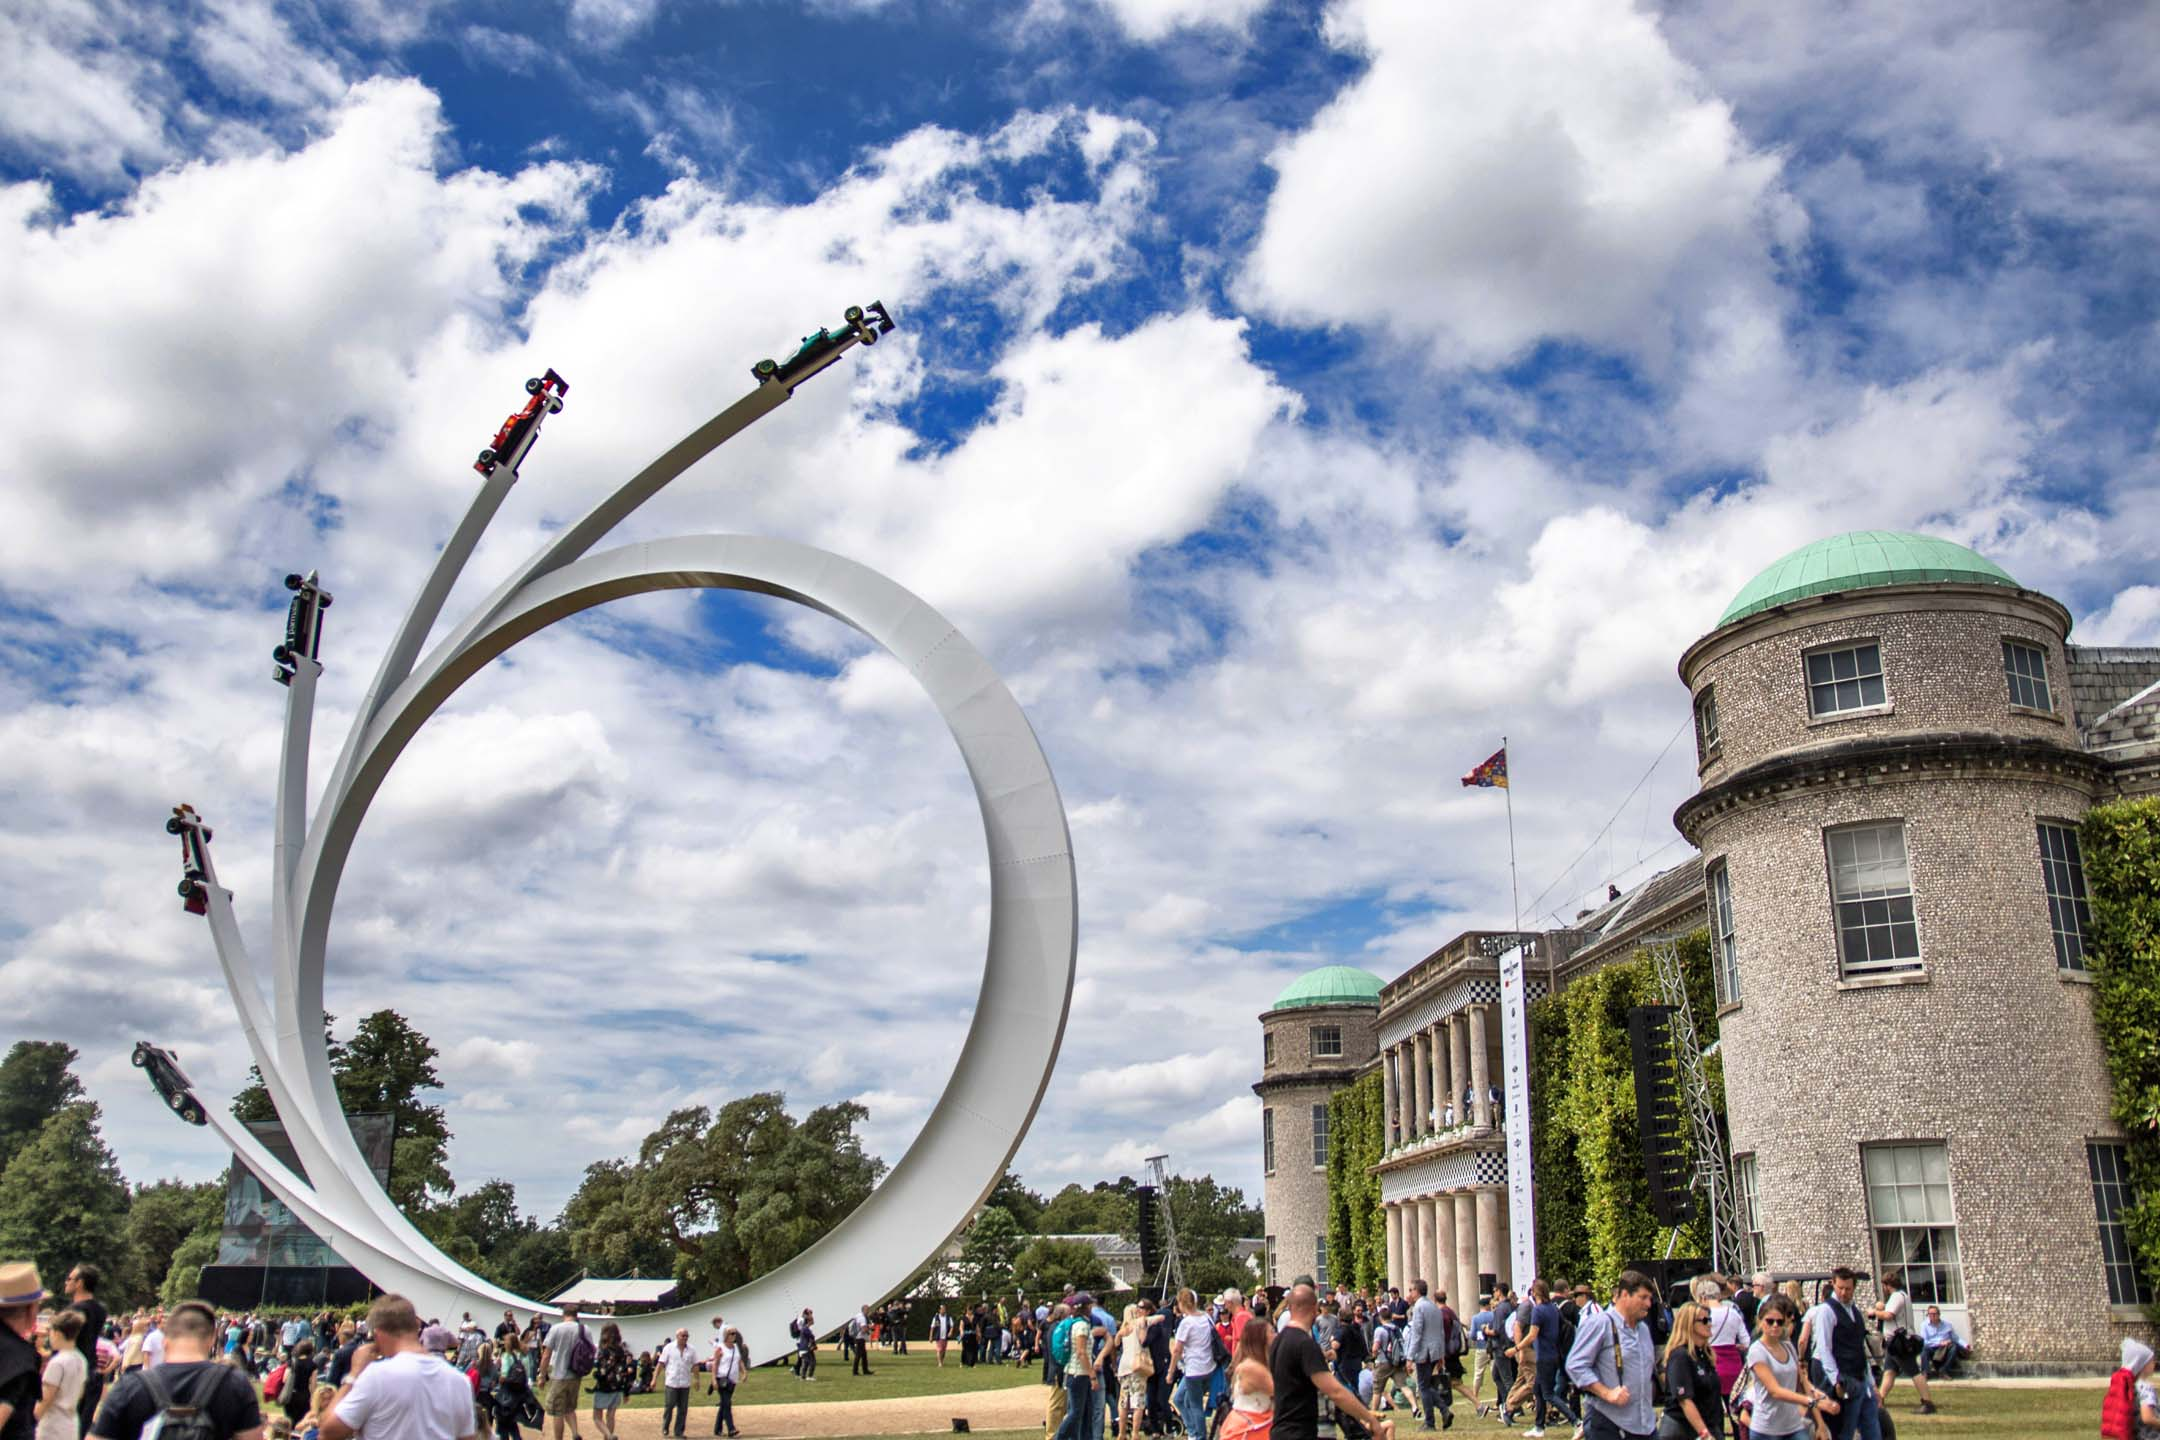 Towering into the sky outside Goodwood's stately living quarters, a quintet of F1 racing machines arc into the sky. The feature is erected each year, and new cars fixed onto it, depending on the theme of the show.